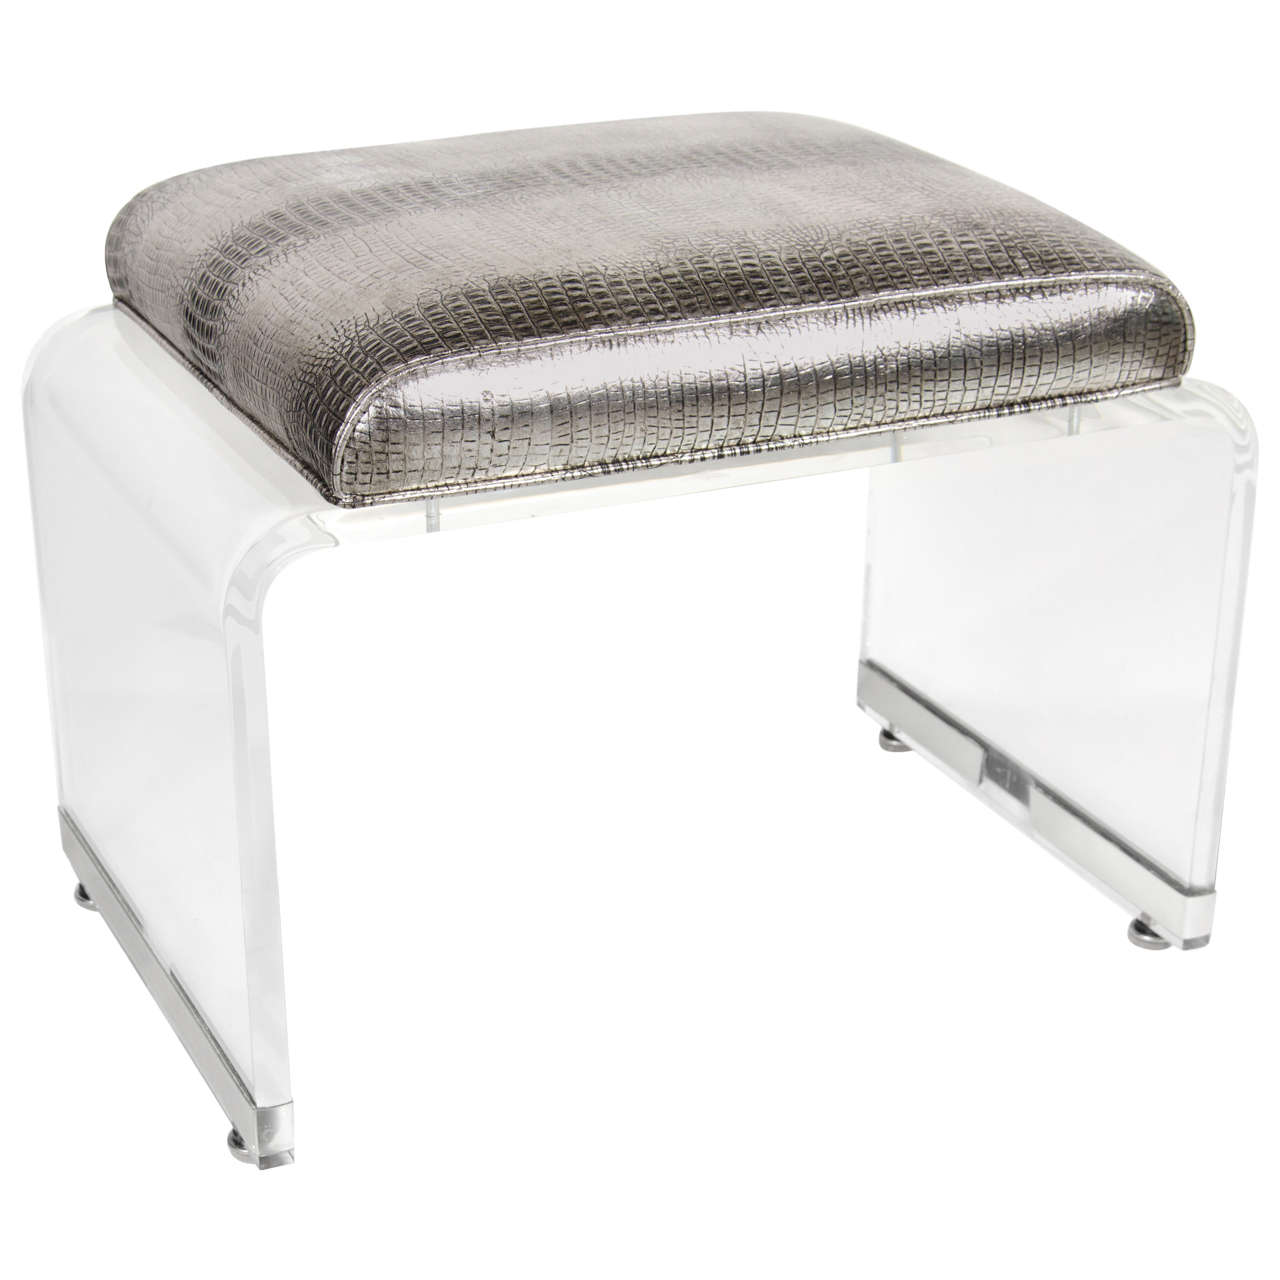 Ultra Chic Mid Century Lucite Waterfall Design Bench Stool At 1stdibs